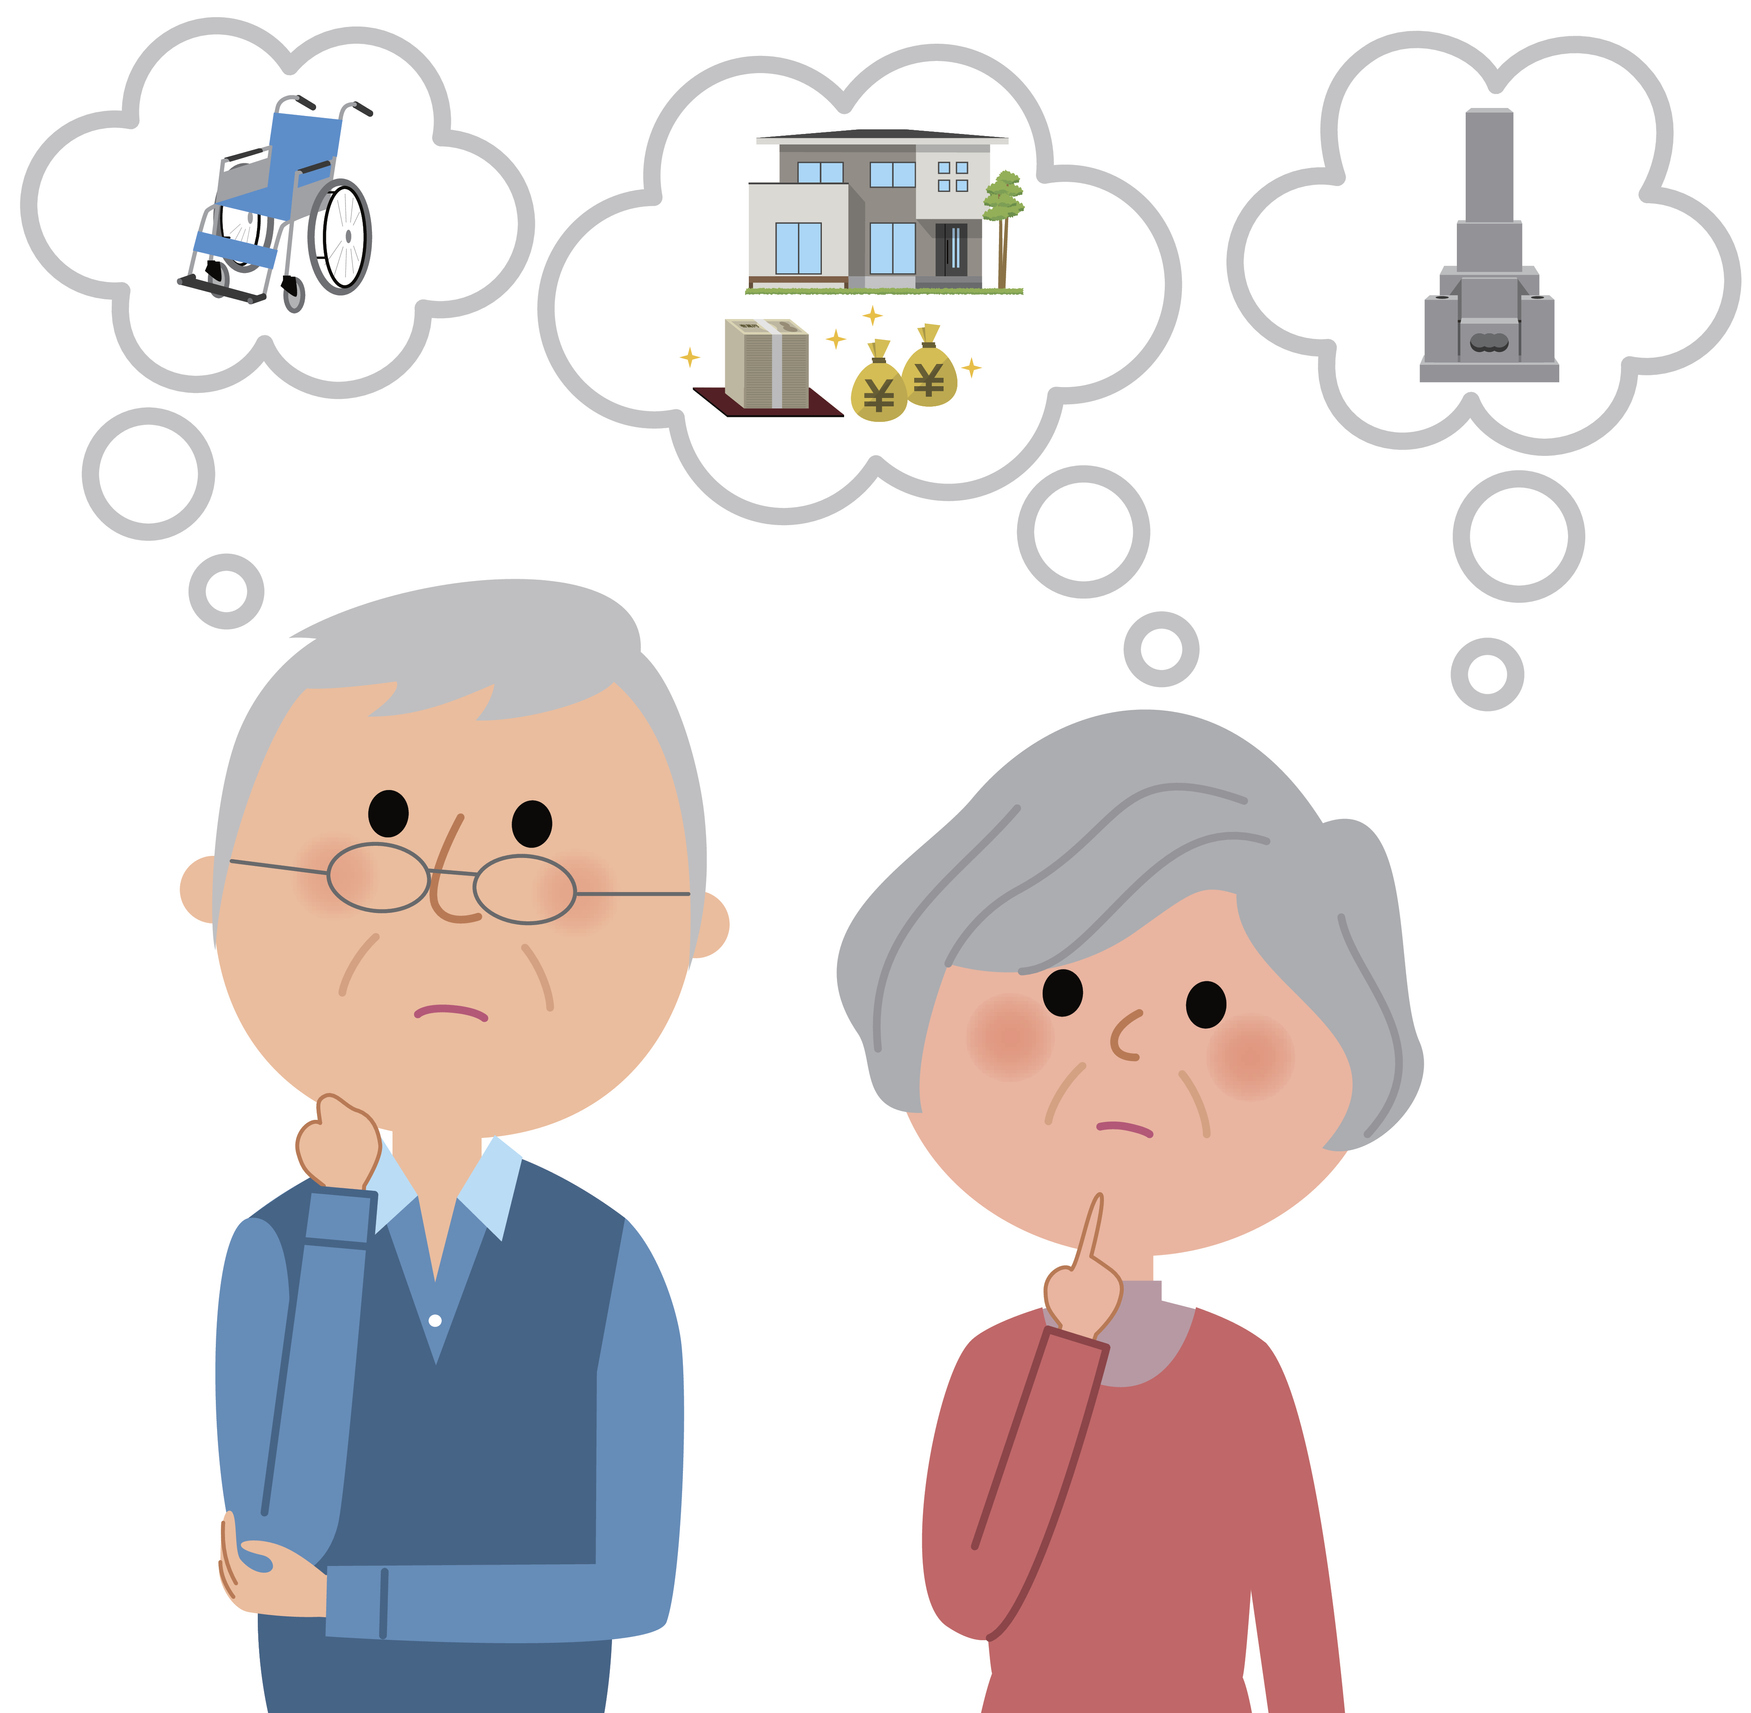 Illustration of a elderly couple imagining a life plan.